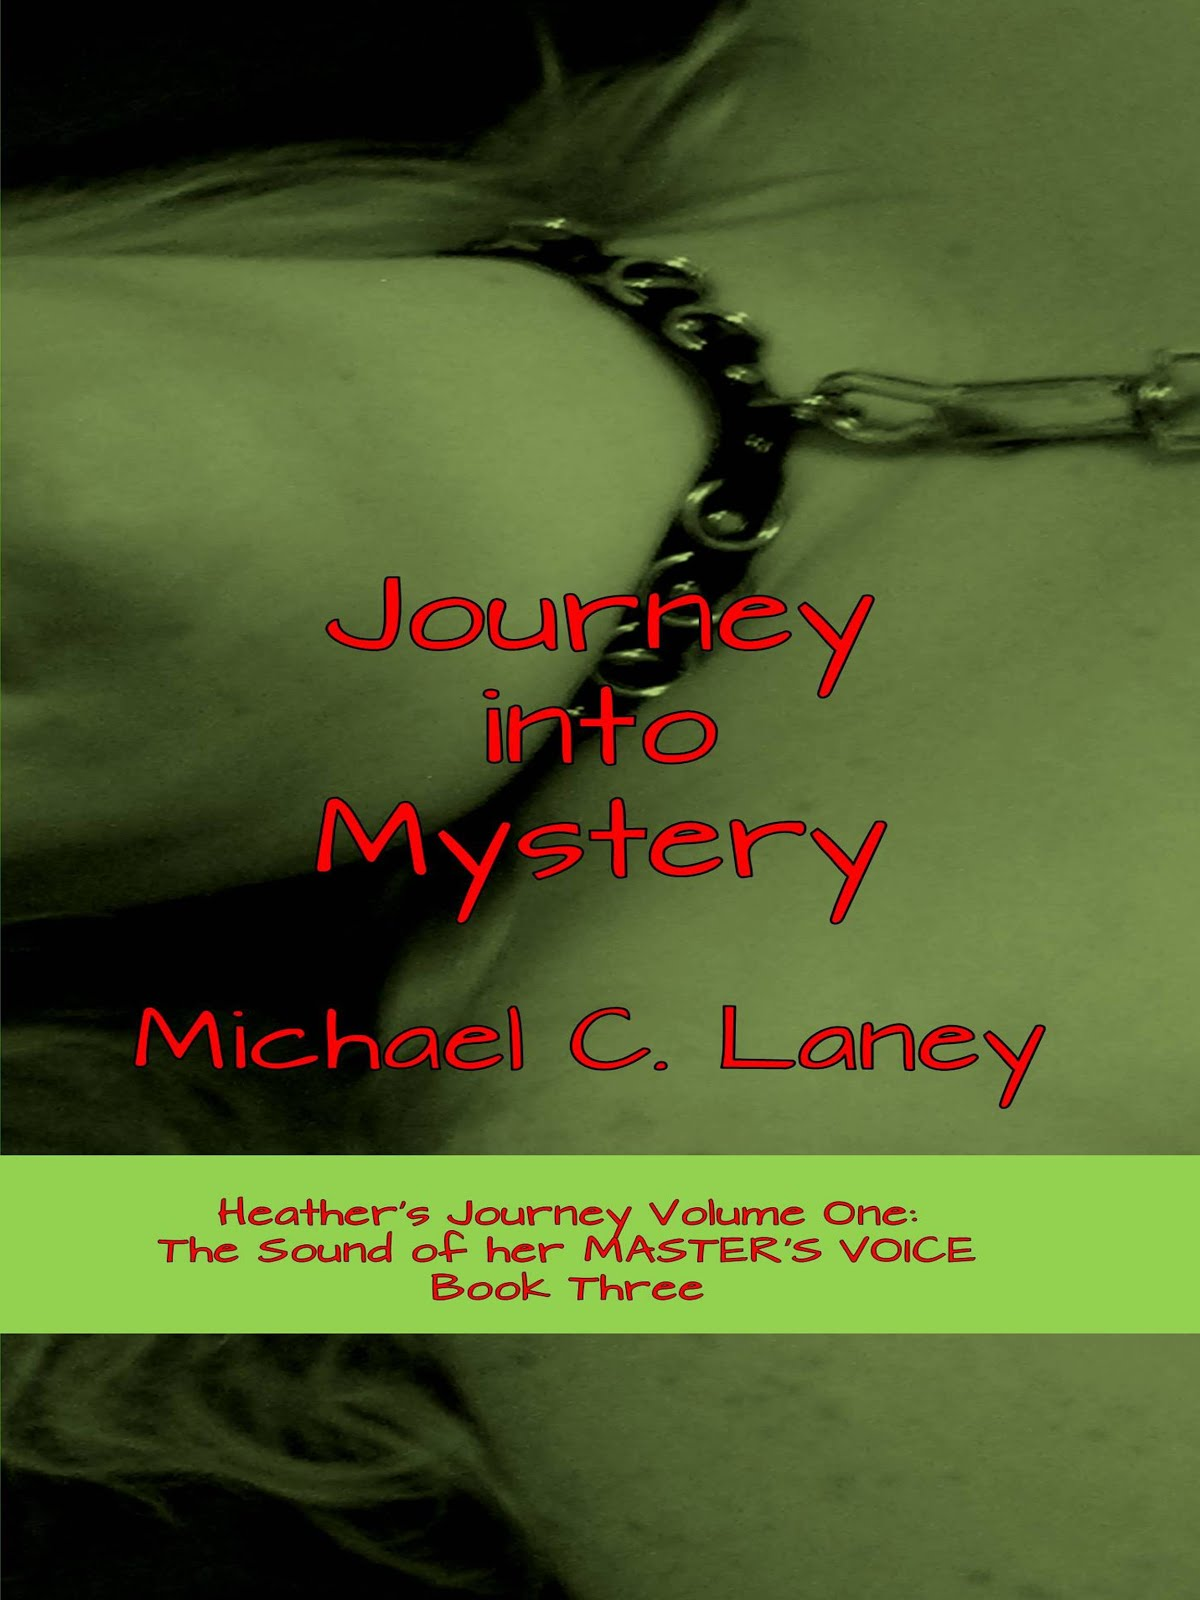 New Release!  Journey into Mystery